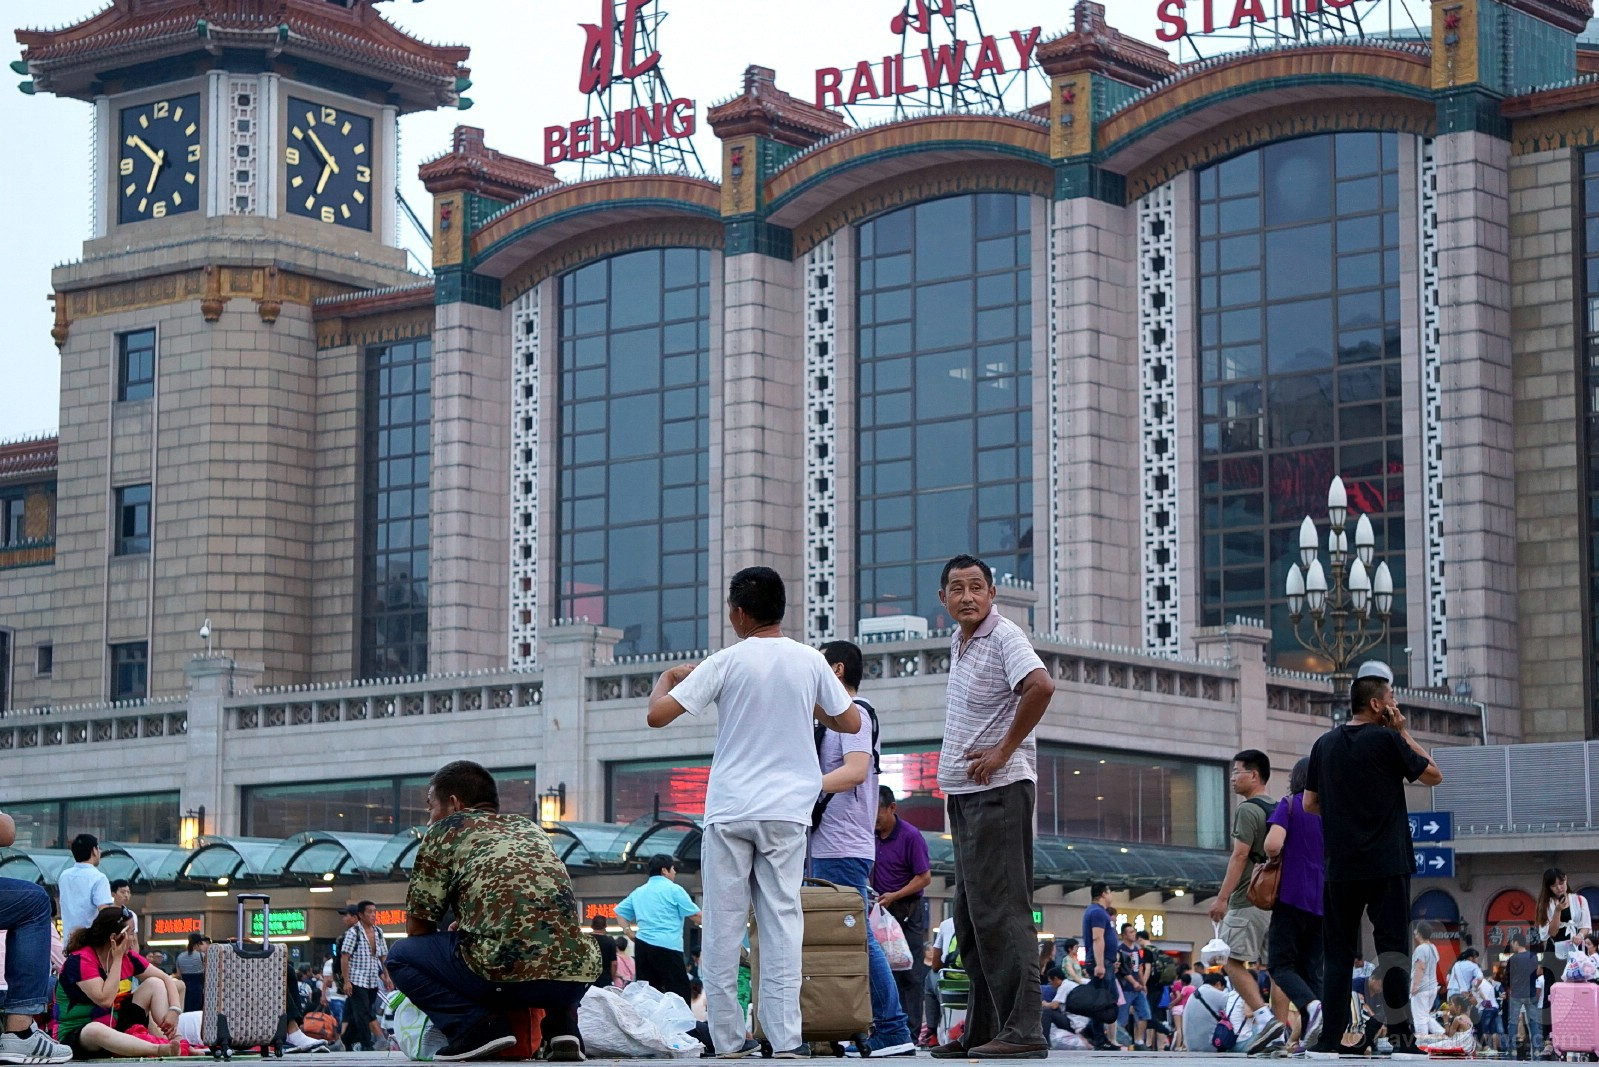 On the expansive concourse fronting Beijing Train Station in Beijing, China. August 10, 2017.